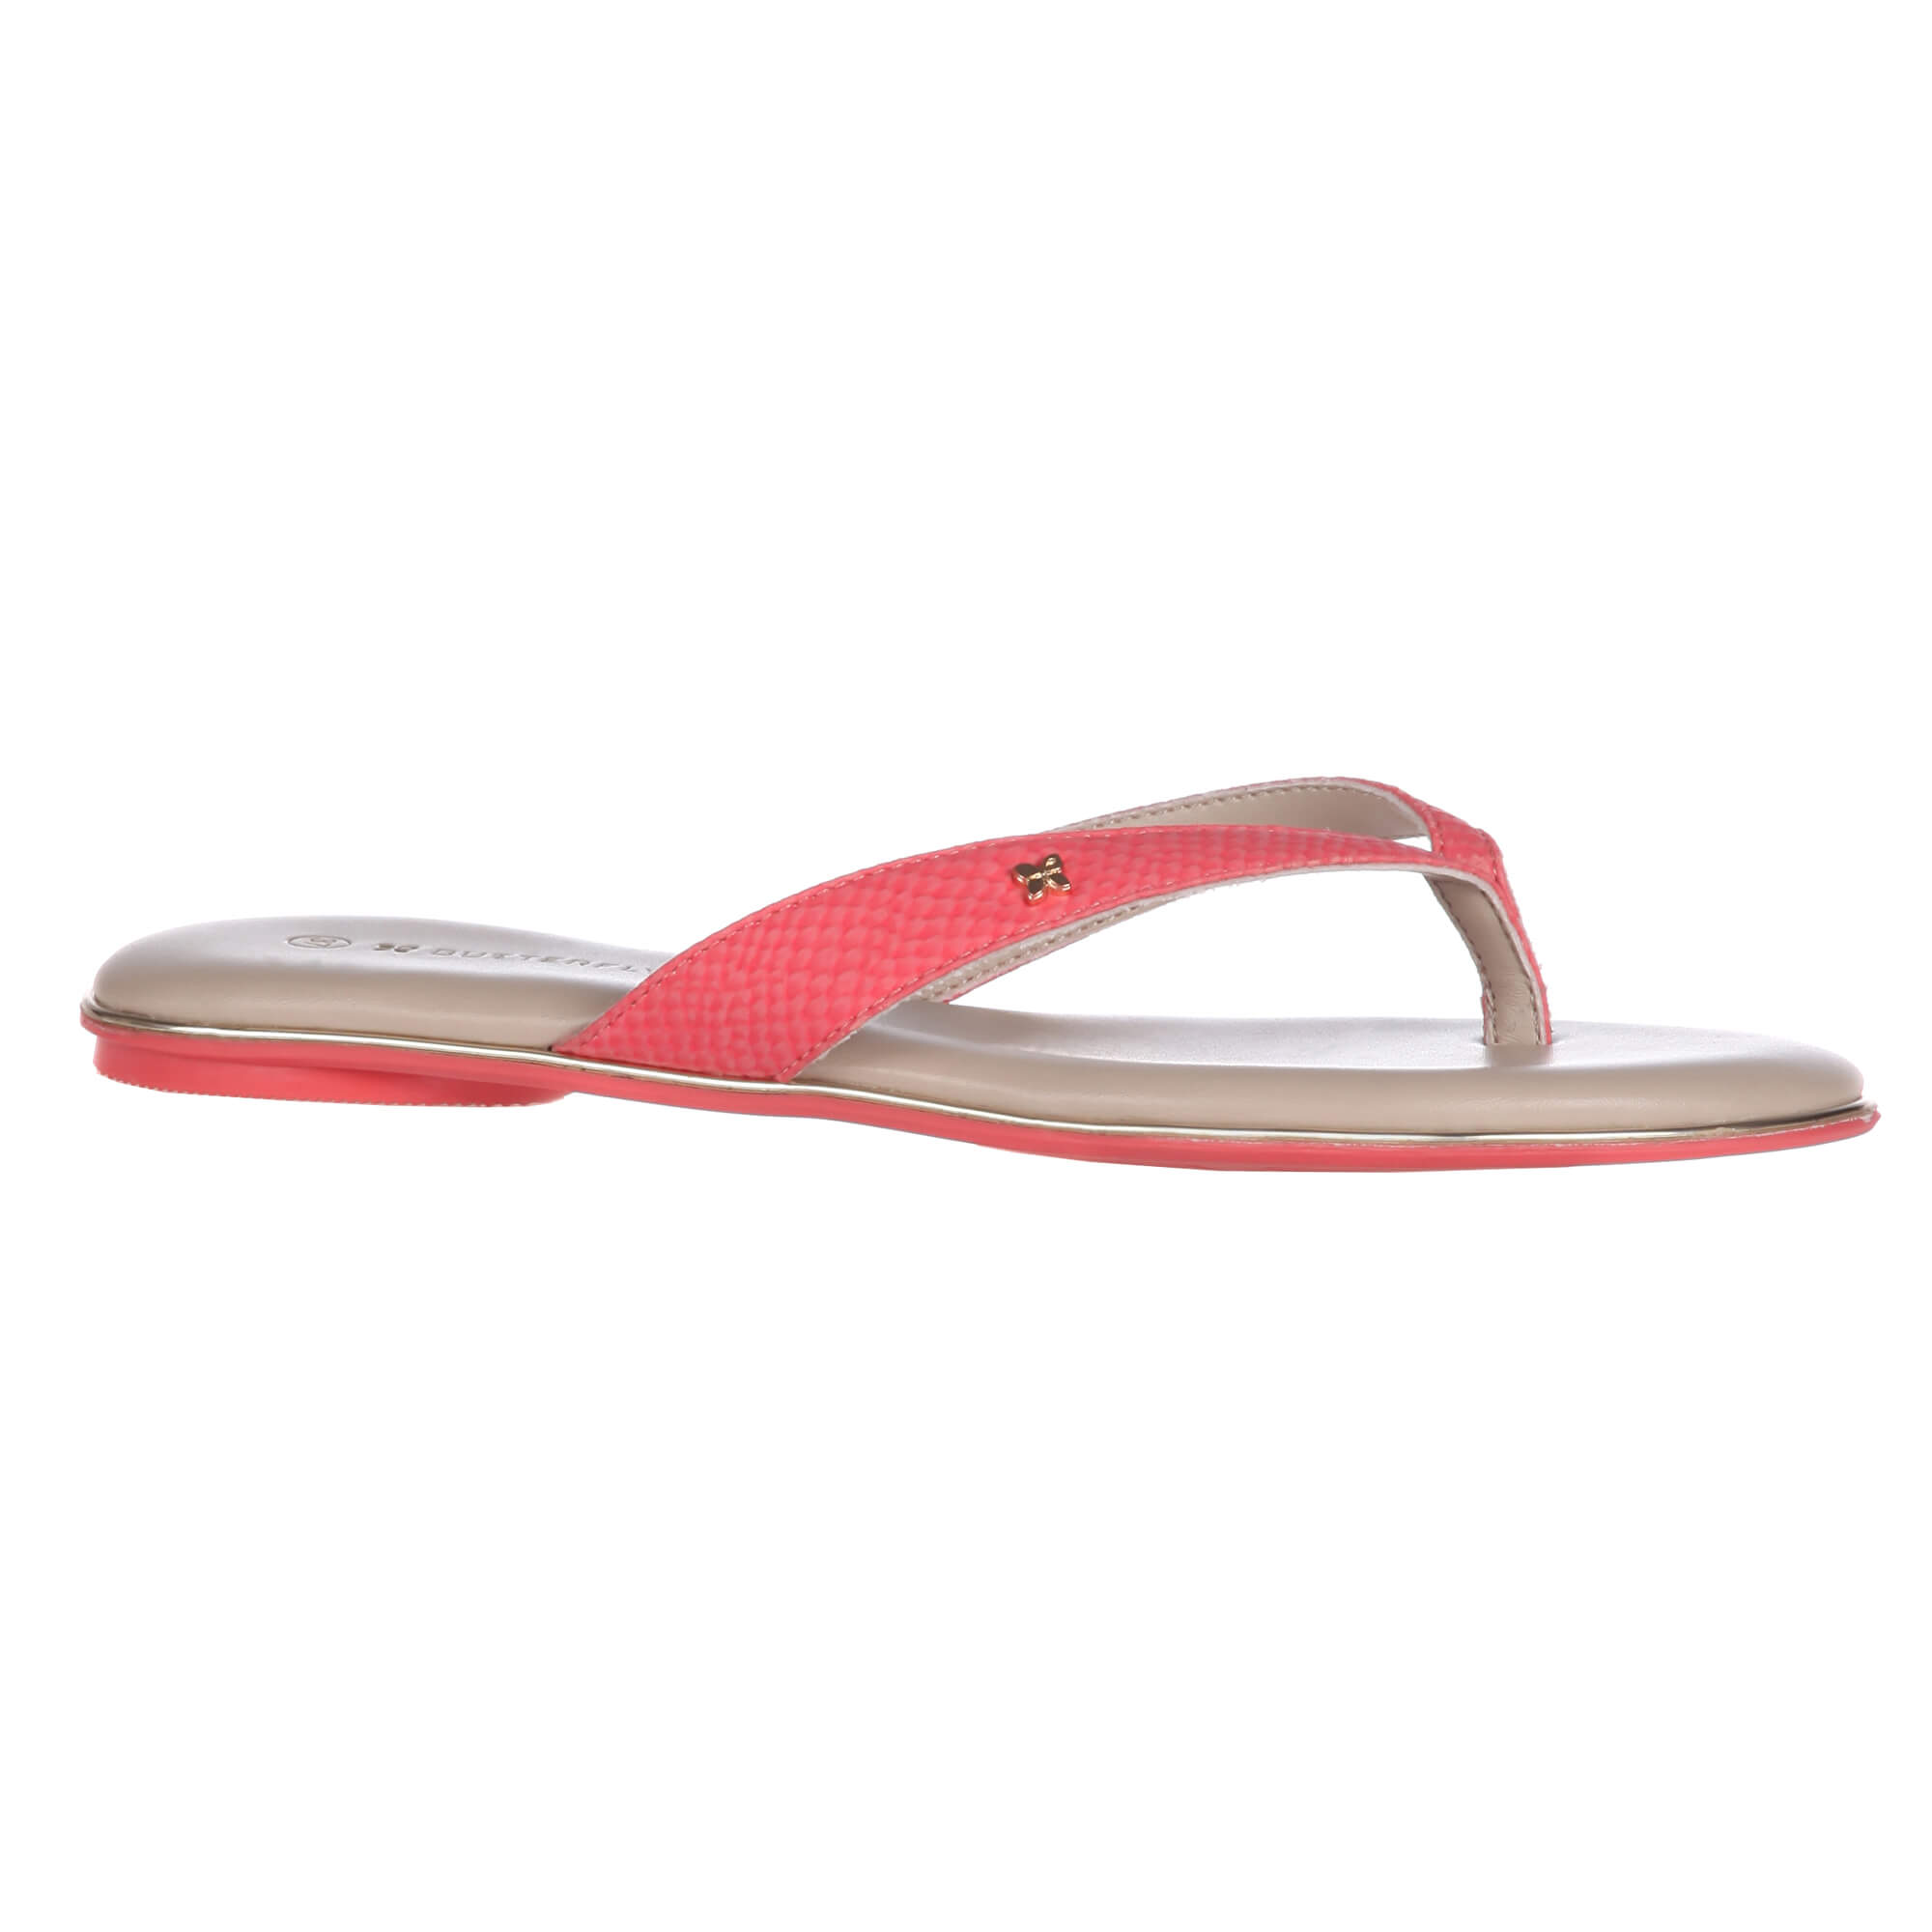 9d6dc7746fad15 Butterfly Twists Folding Flip Flops Lola Coral Snake BT27-003-232 ...